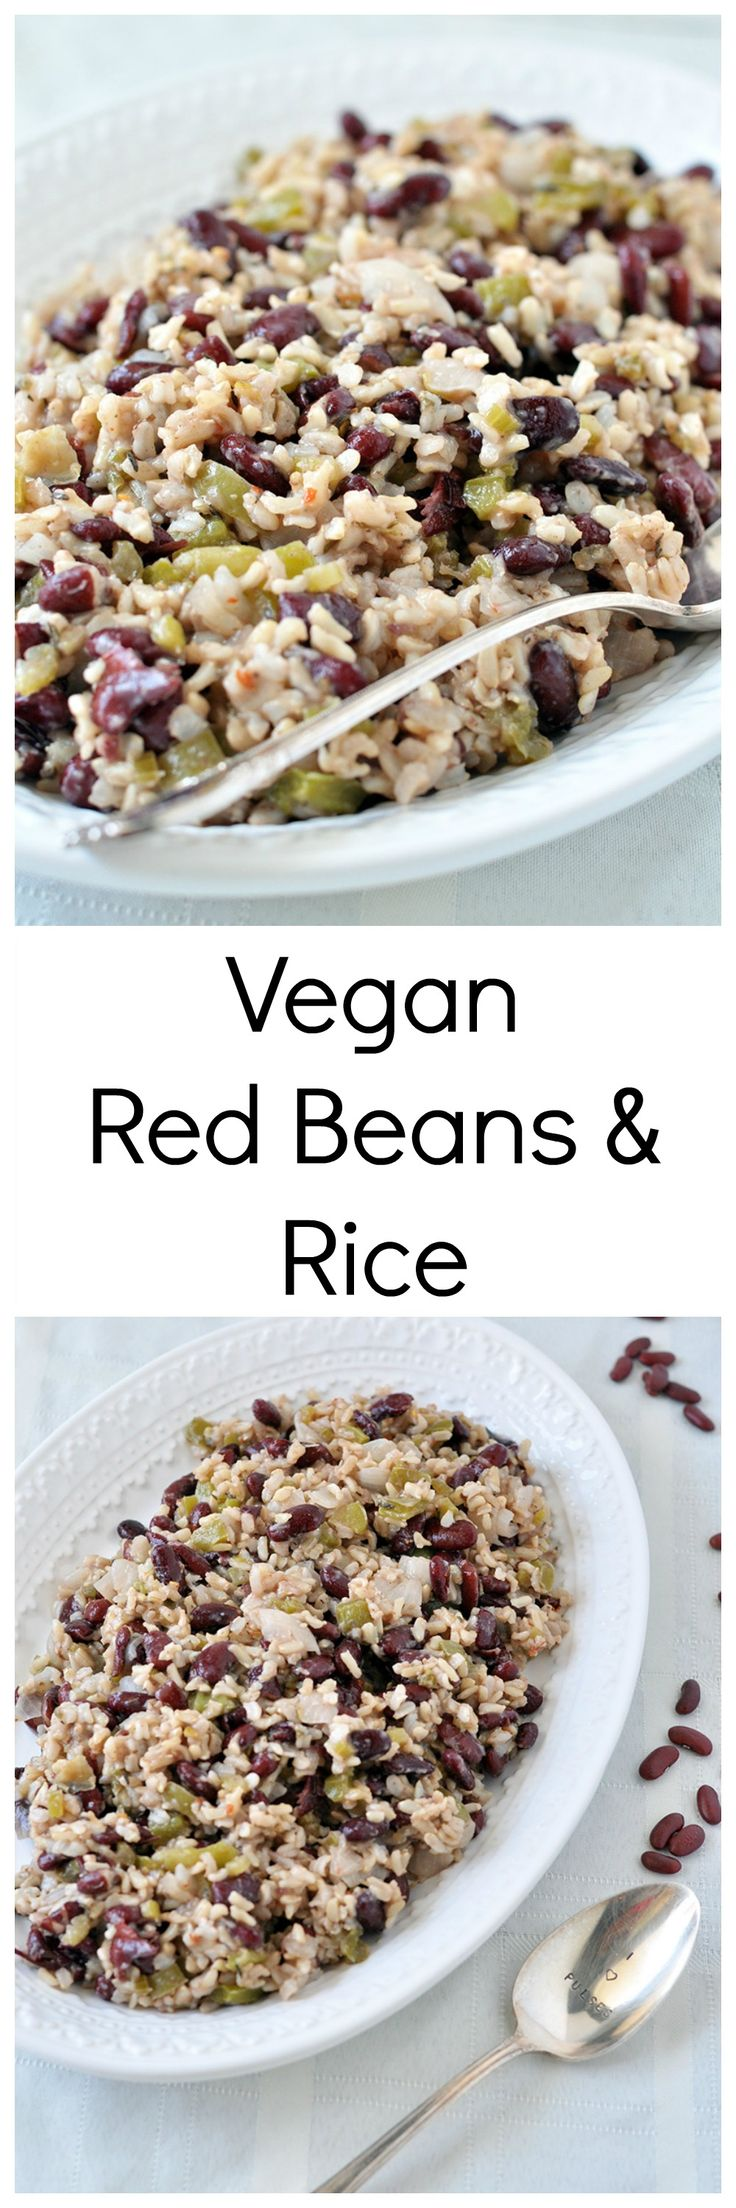 Vegan red beans and rice. Ingredients: brown rice, celery, green pepper, kidney beans, garlic, bay leaf, sage, oregano, cayenne, red pepper flake